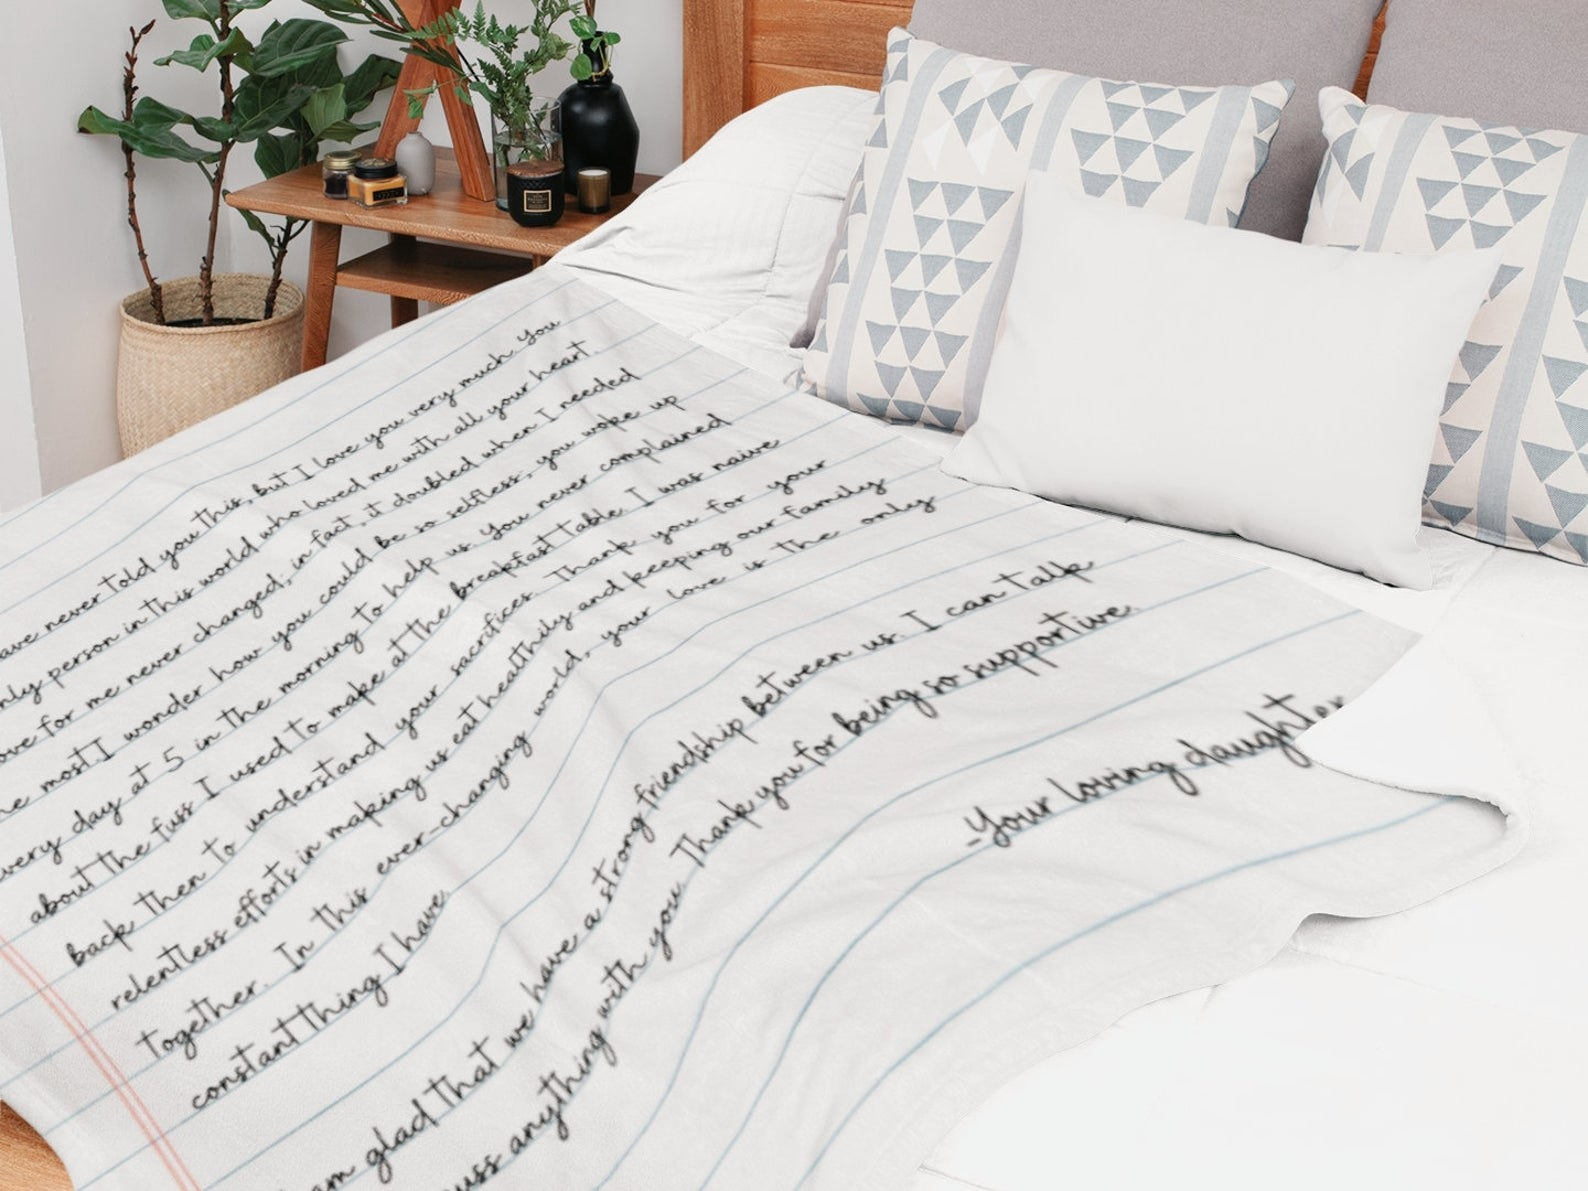 A blanket that looks like a notebook page with writing on it